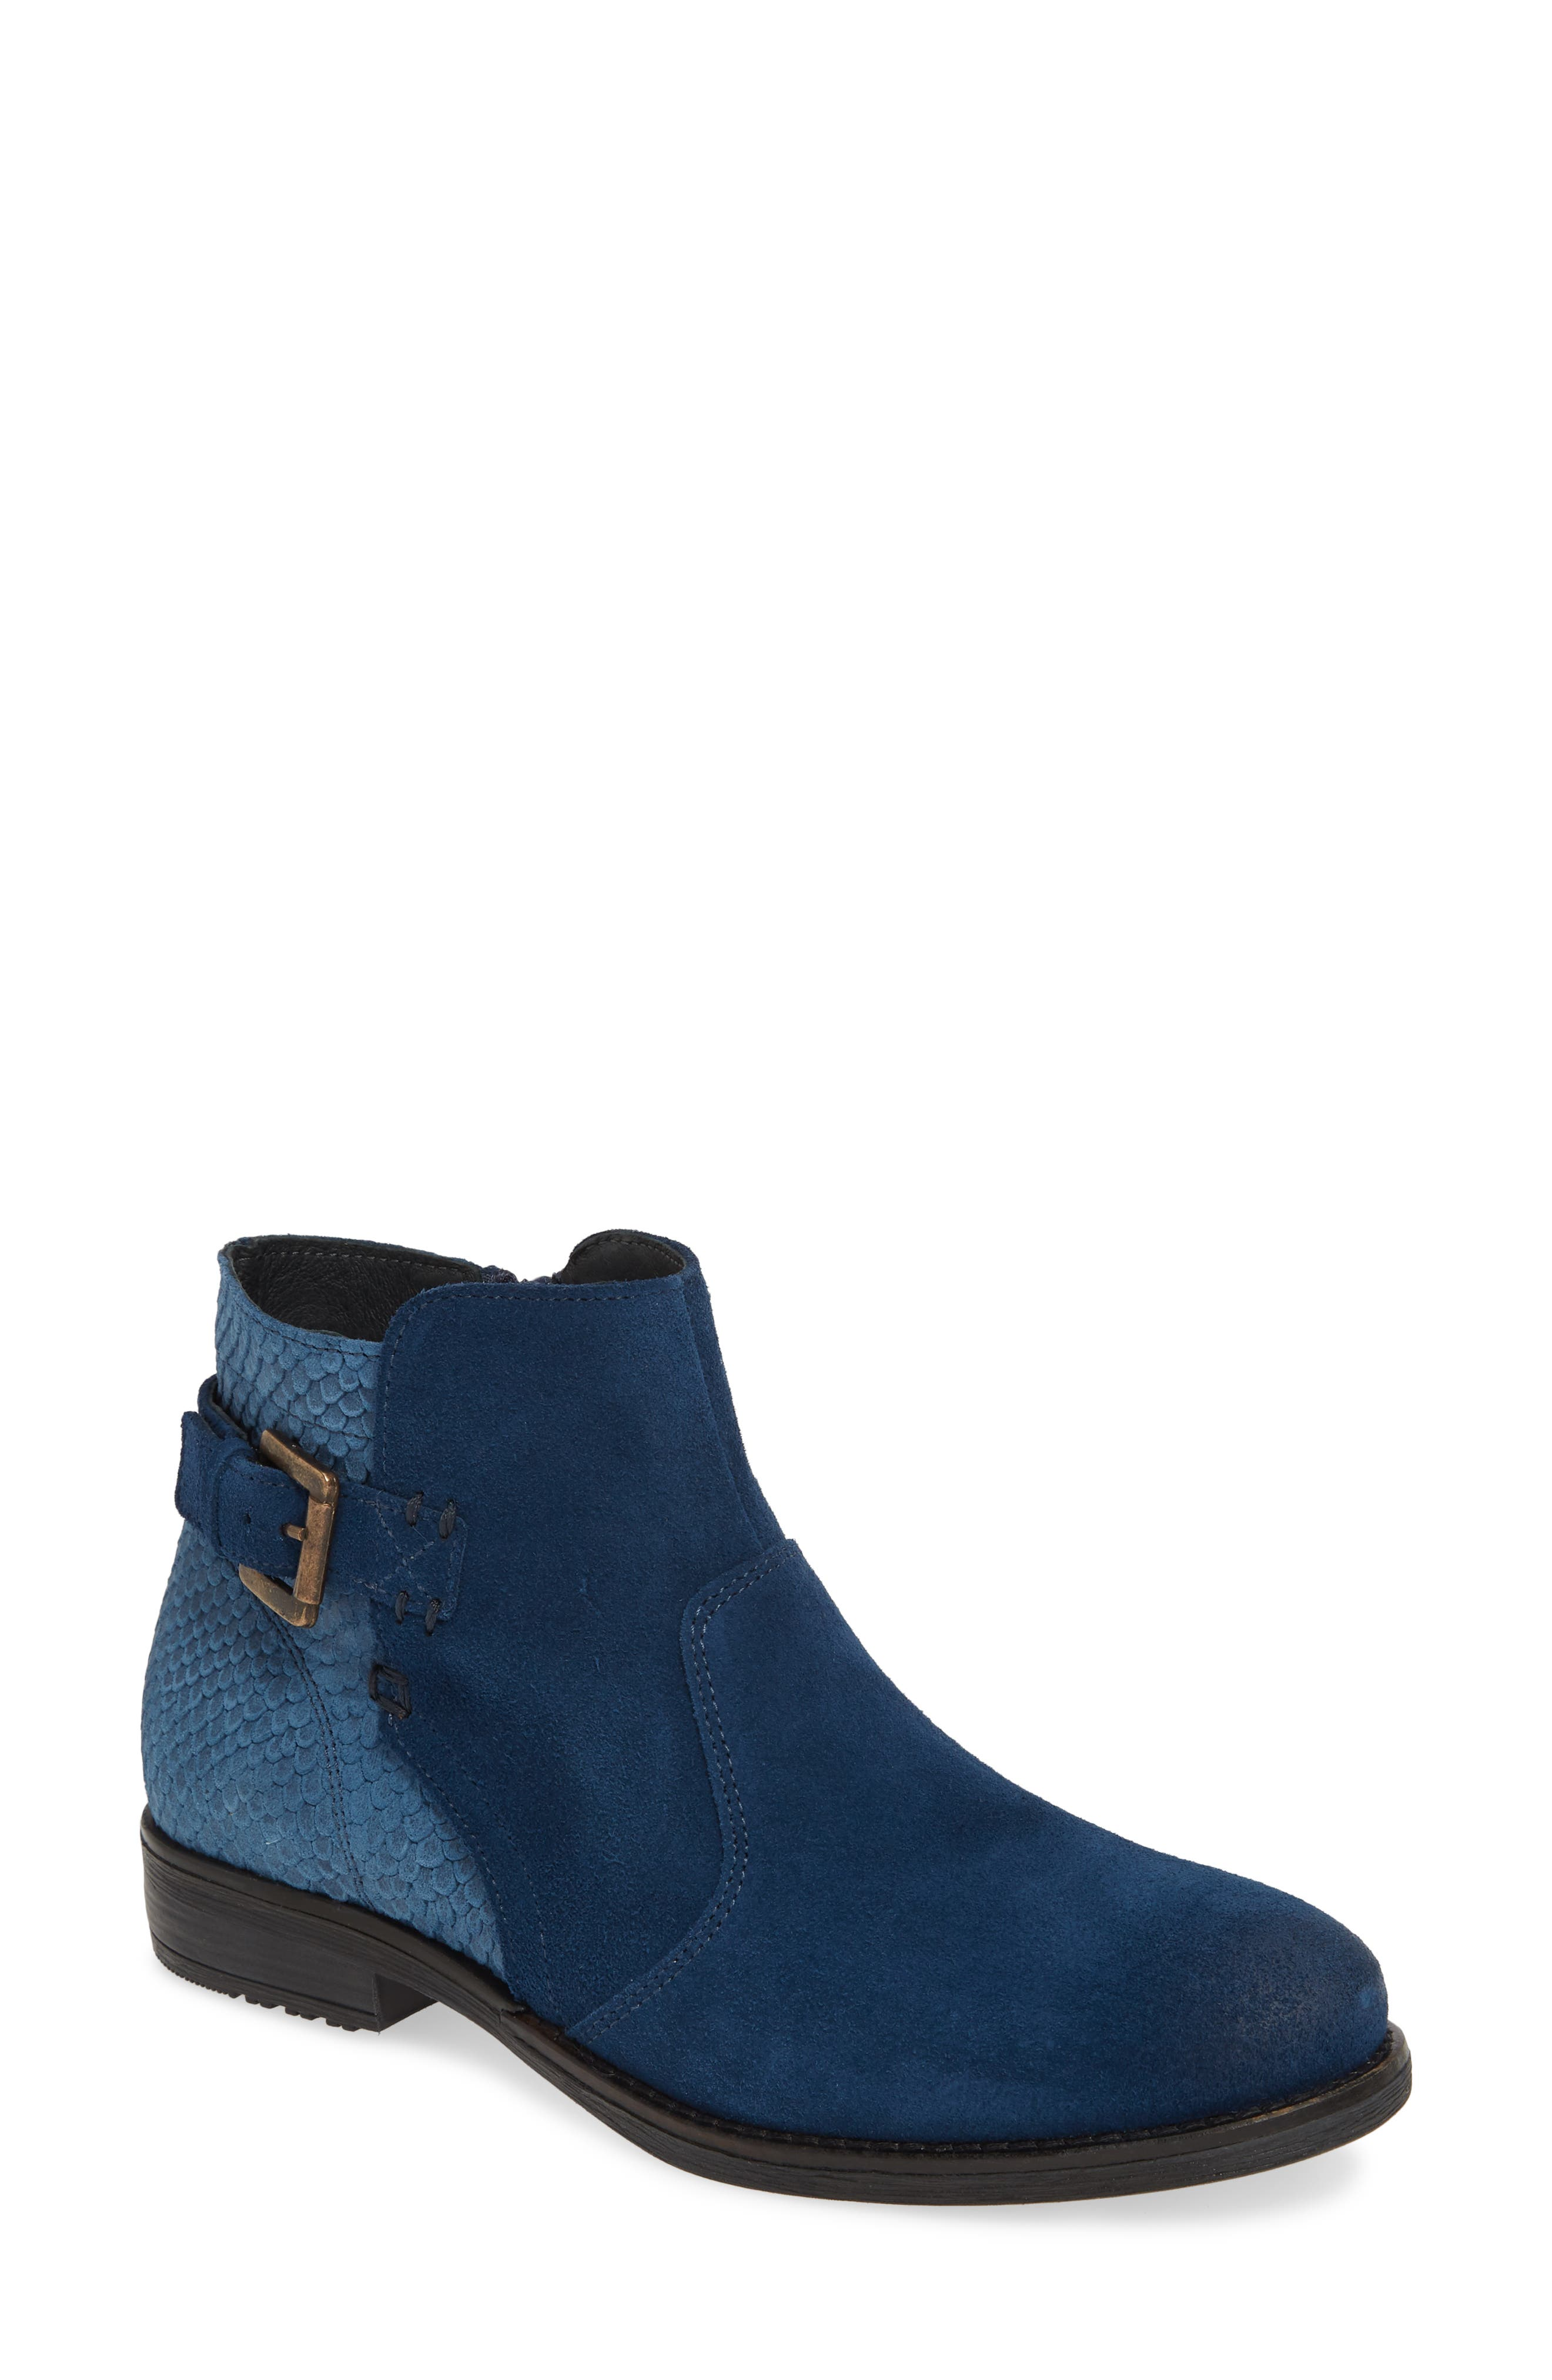 Bos. & Co. Tryn Bootie, Blue